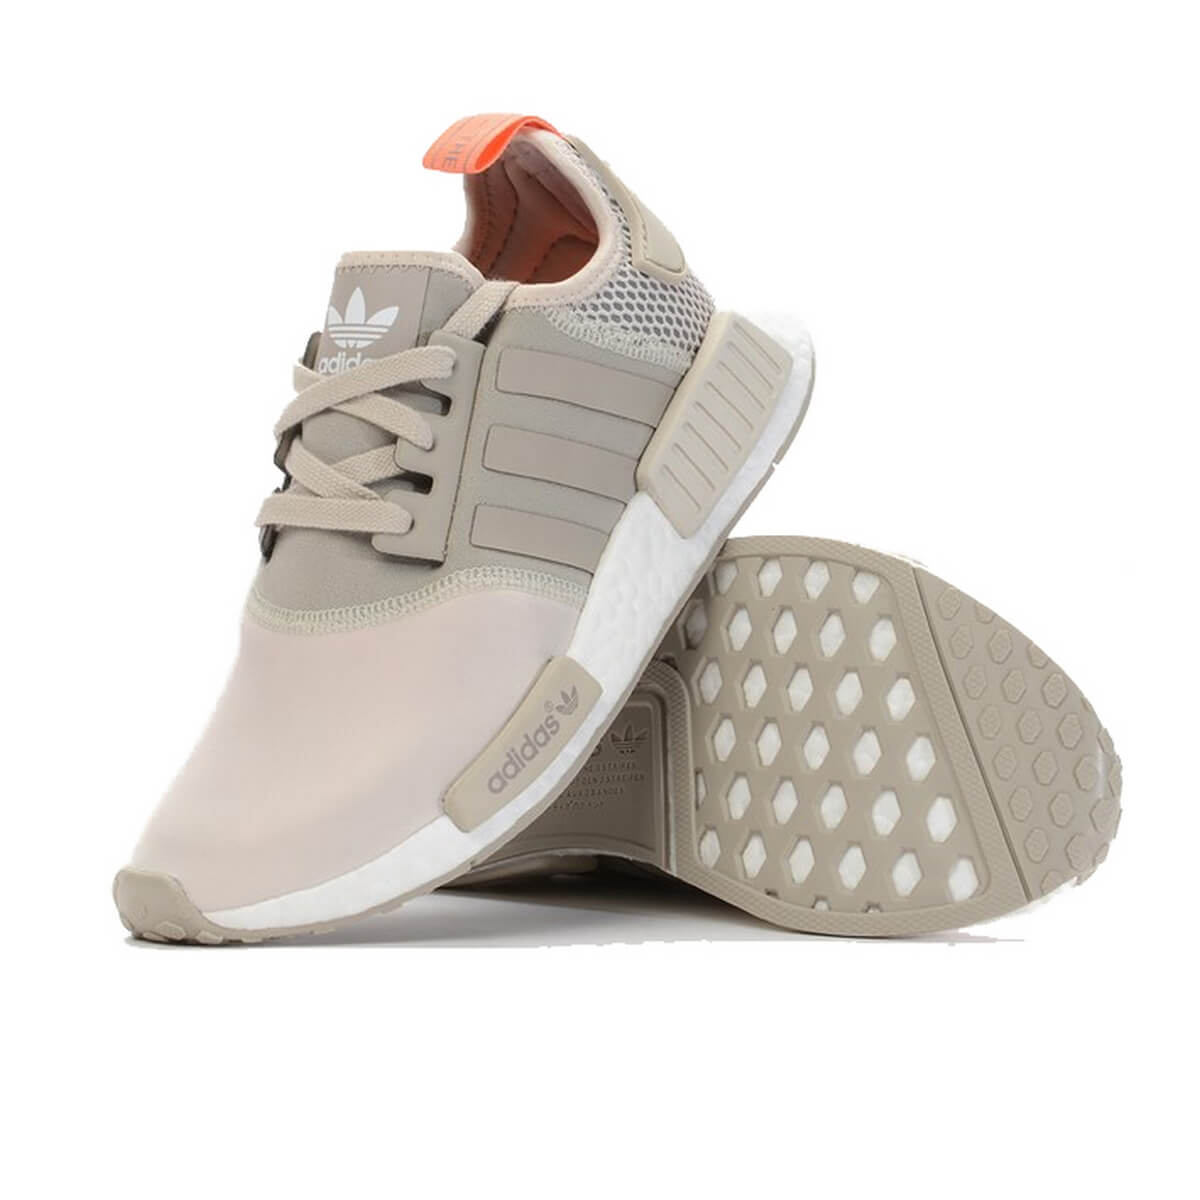 adidas nmd r1 w clear brown tan beige s75233 pop need store. Black Bedroom Furniture Sets. Home Design Ideas